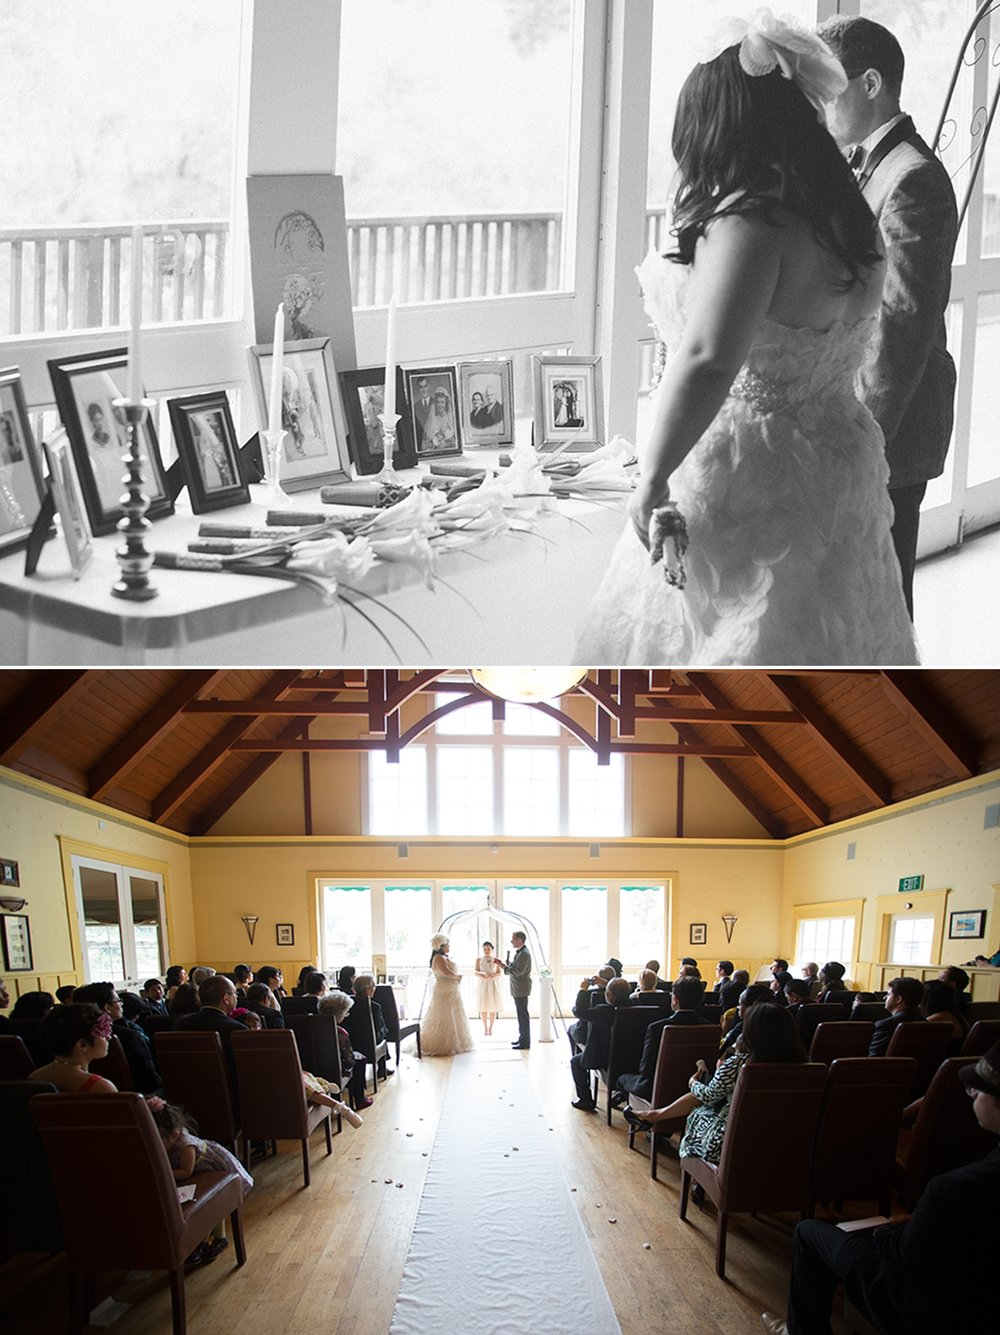 During the ceremony the bride and groom visited a table with photos from their family, past and present. At the Highland Dell Lodge in Monte Rio, California.